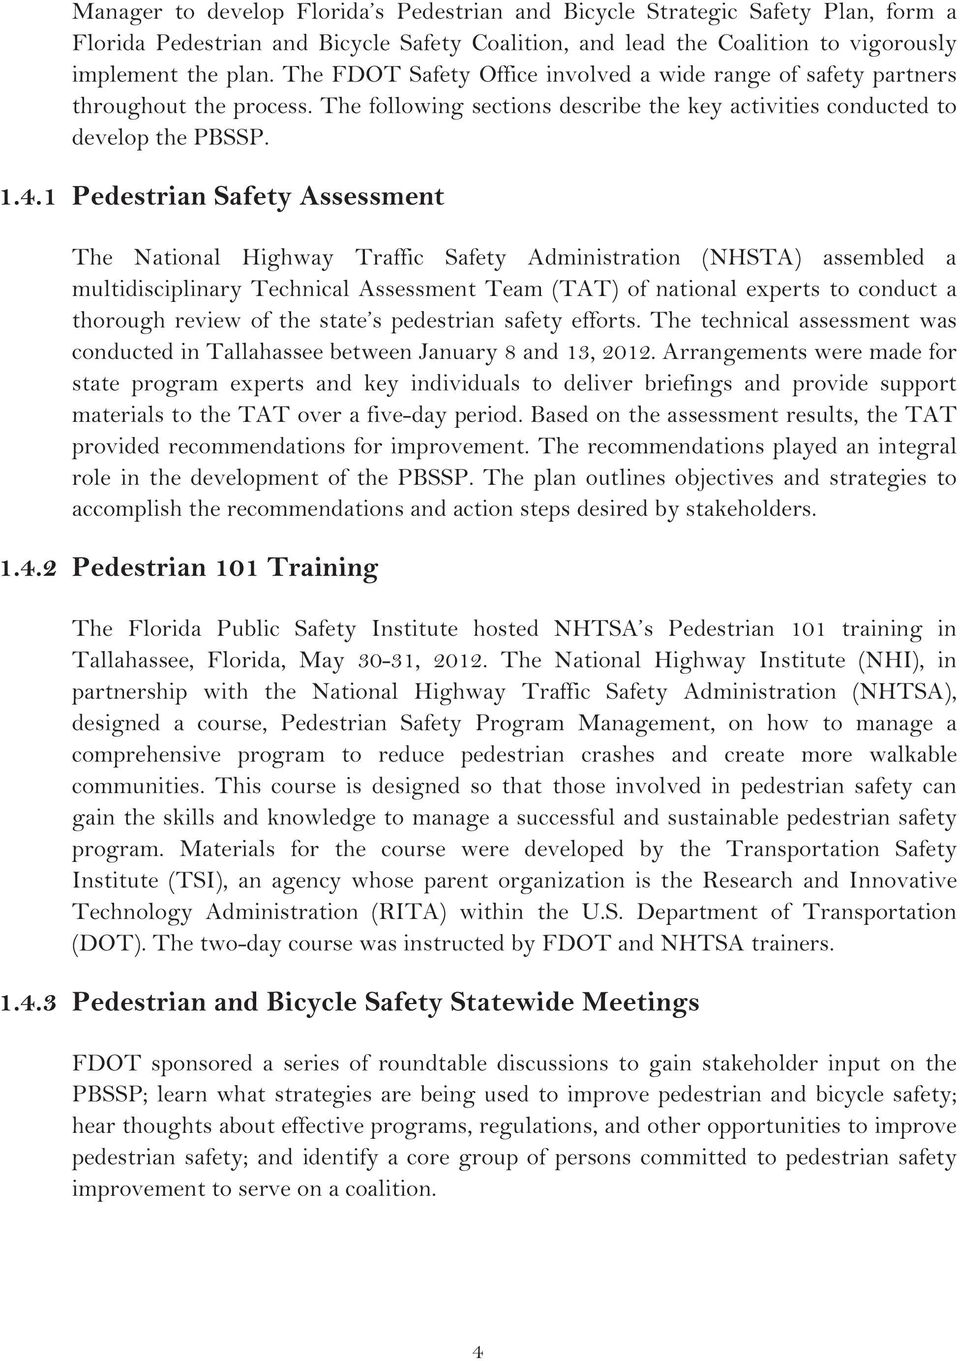 1 Pedestrian Safety Assessment The National Highway Traffic Safety Administration (NHSTA) assembled a multidisciplinary Technical Assessment Team (TAT) of national experts to conduct a thorough